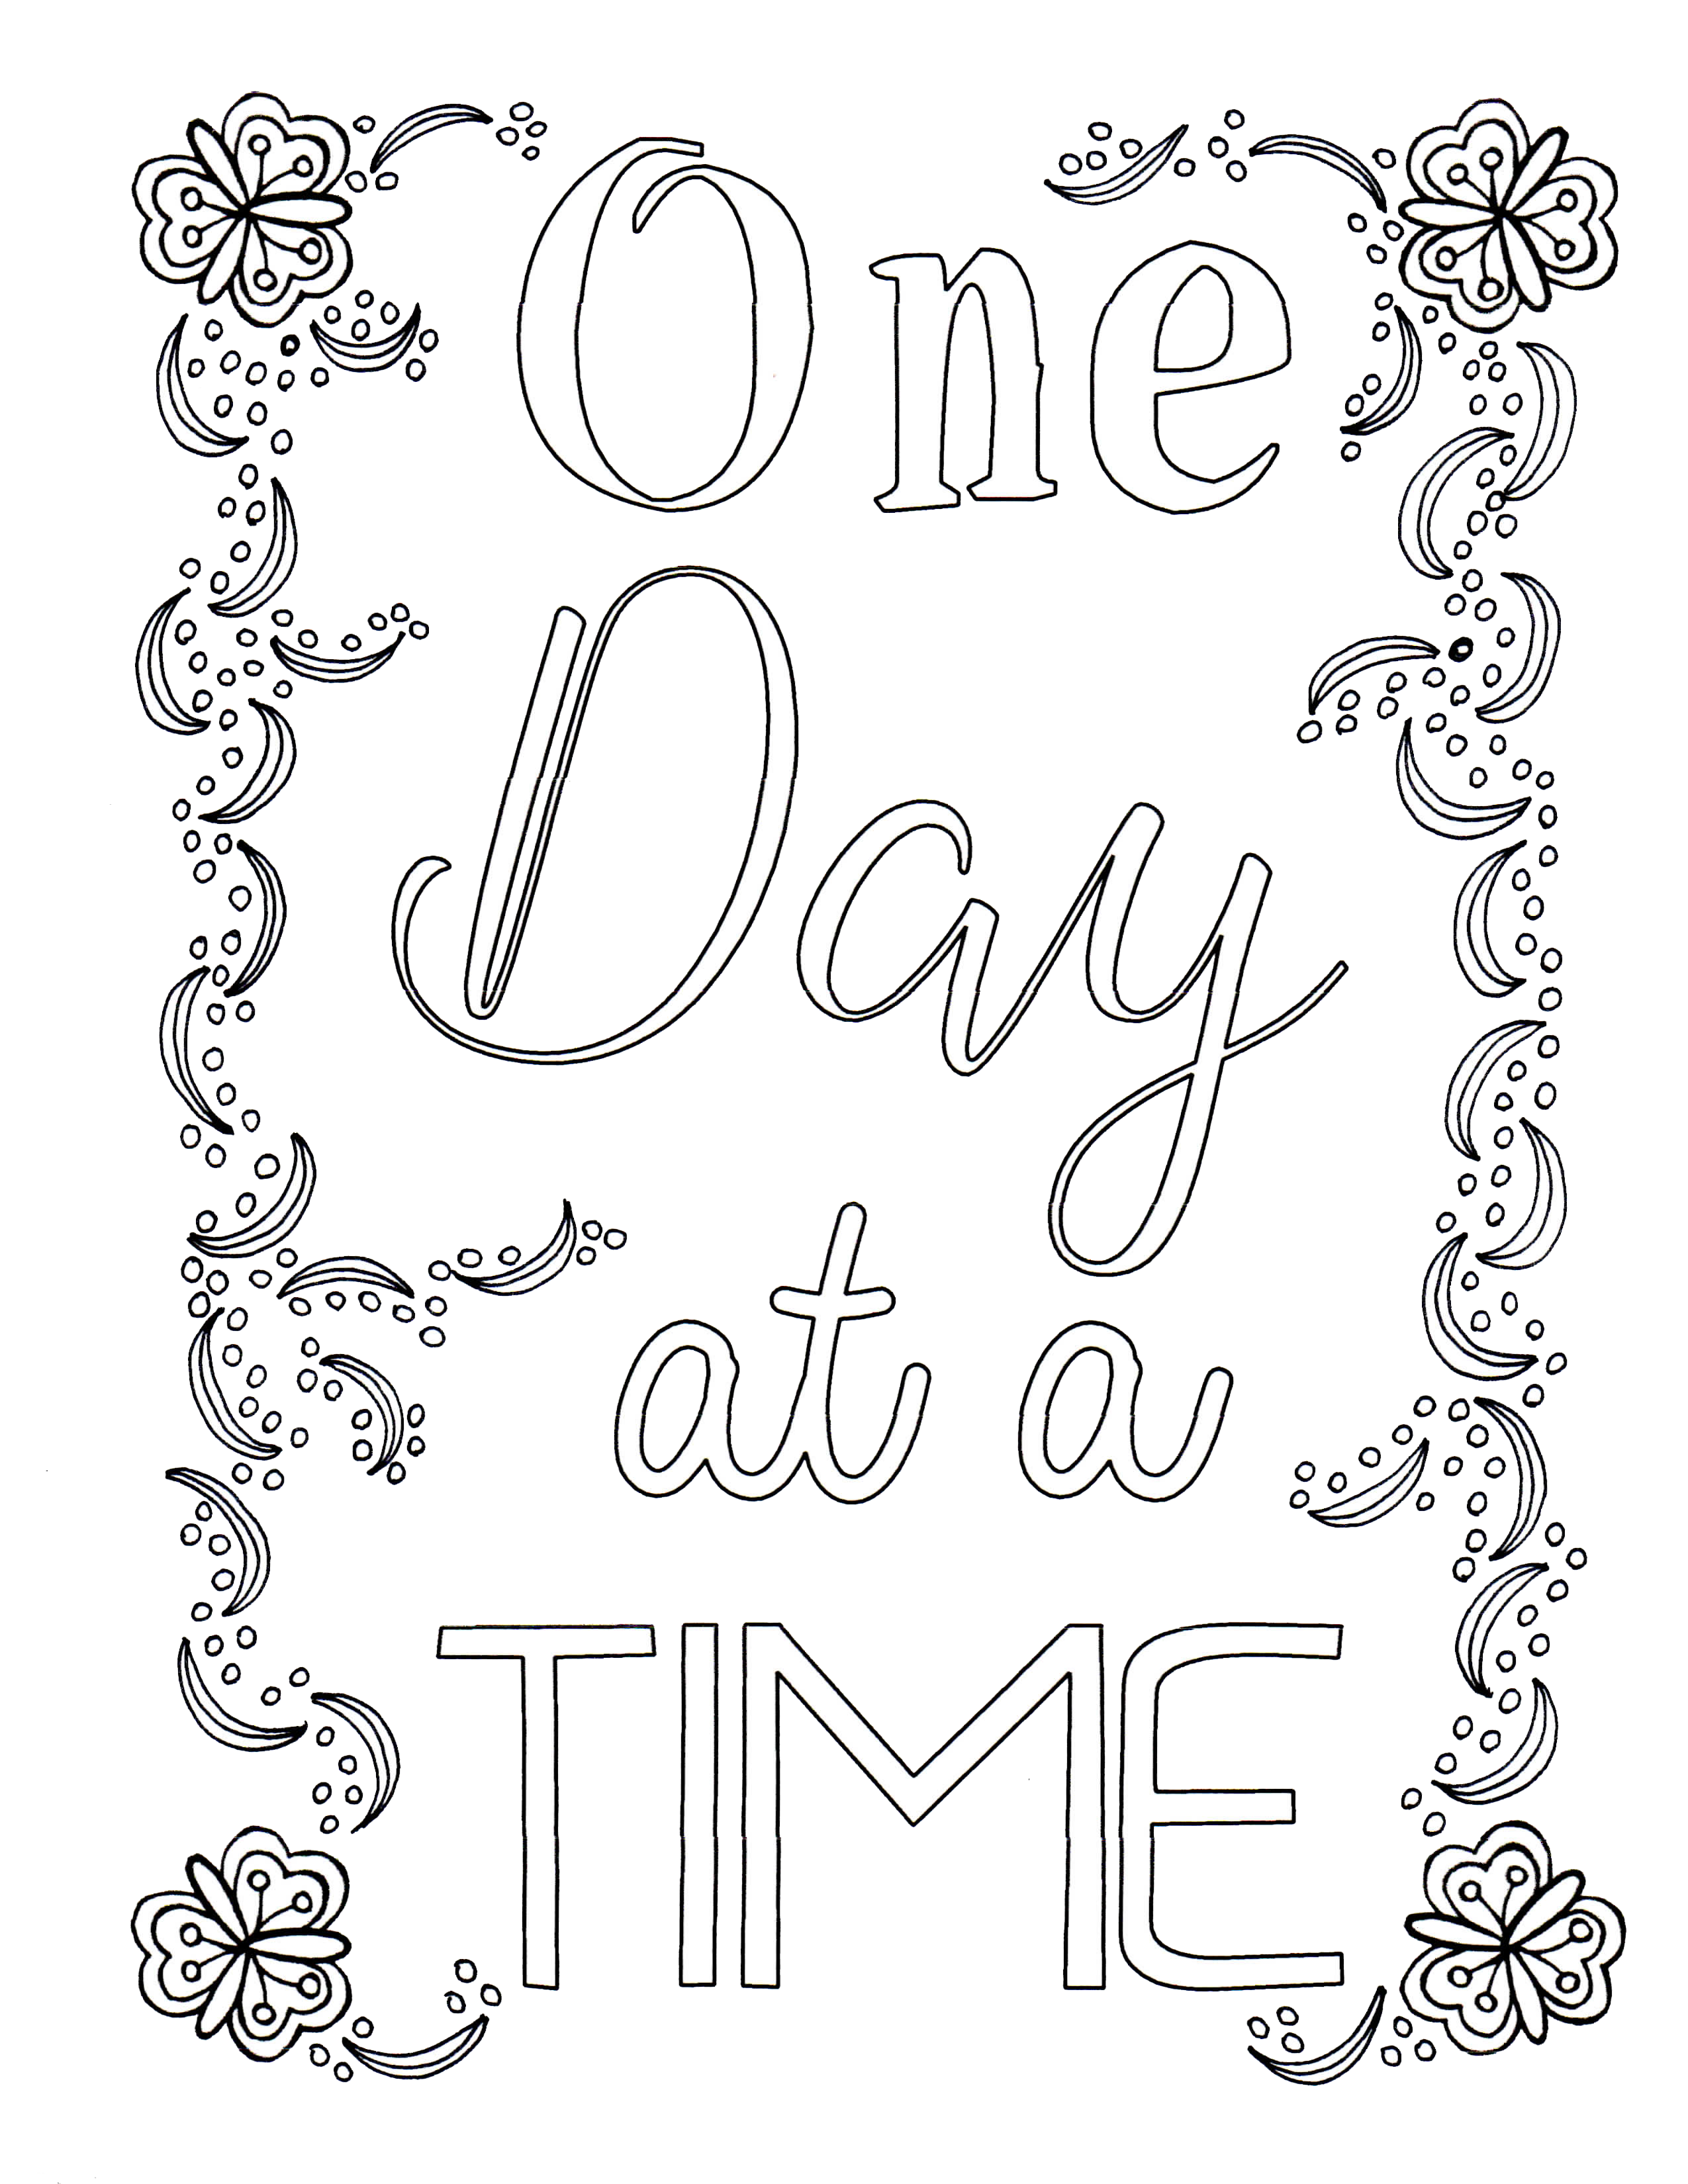 One Day At A Time Free Coloring Printable From The Best Unexpected Www Thebestunexpecte Quote Coloring Pages Coloring Pages Inspirational Love Coloring Pages